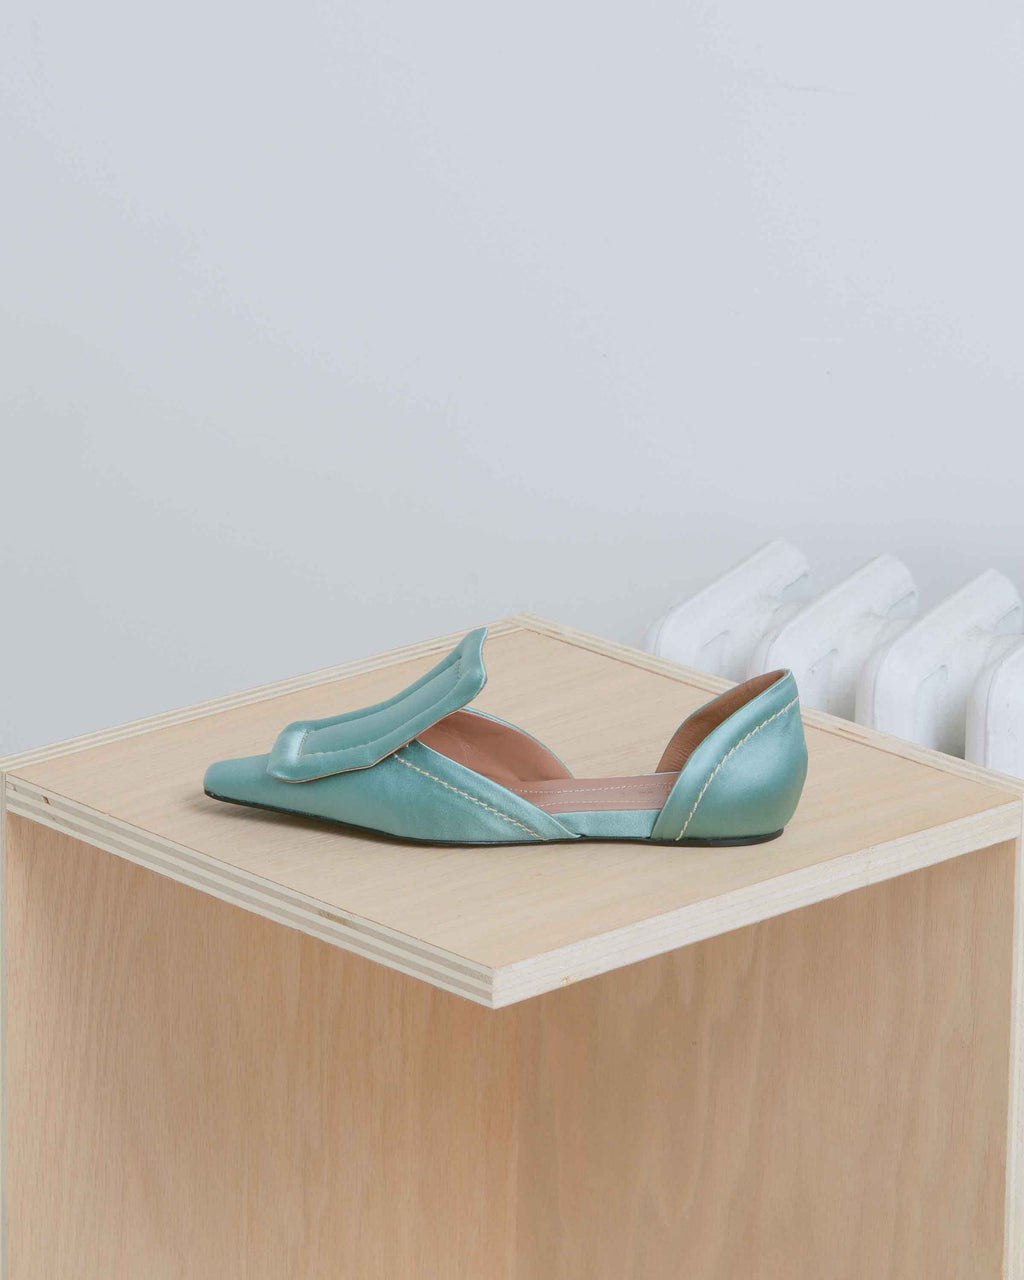 Green Satin Moccasin D'orsay Flat